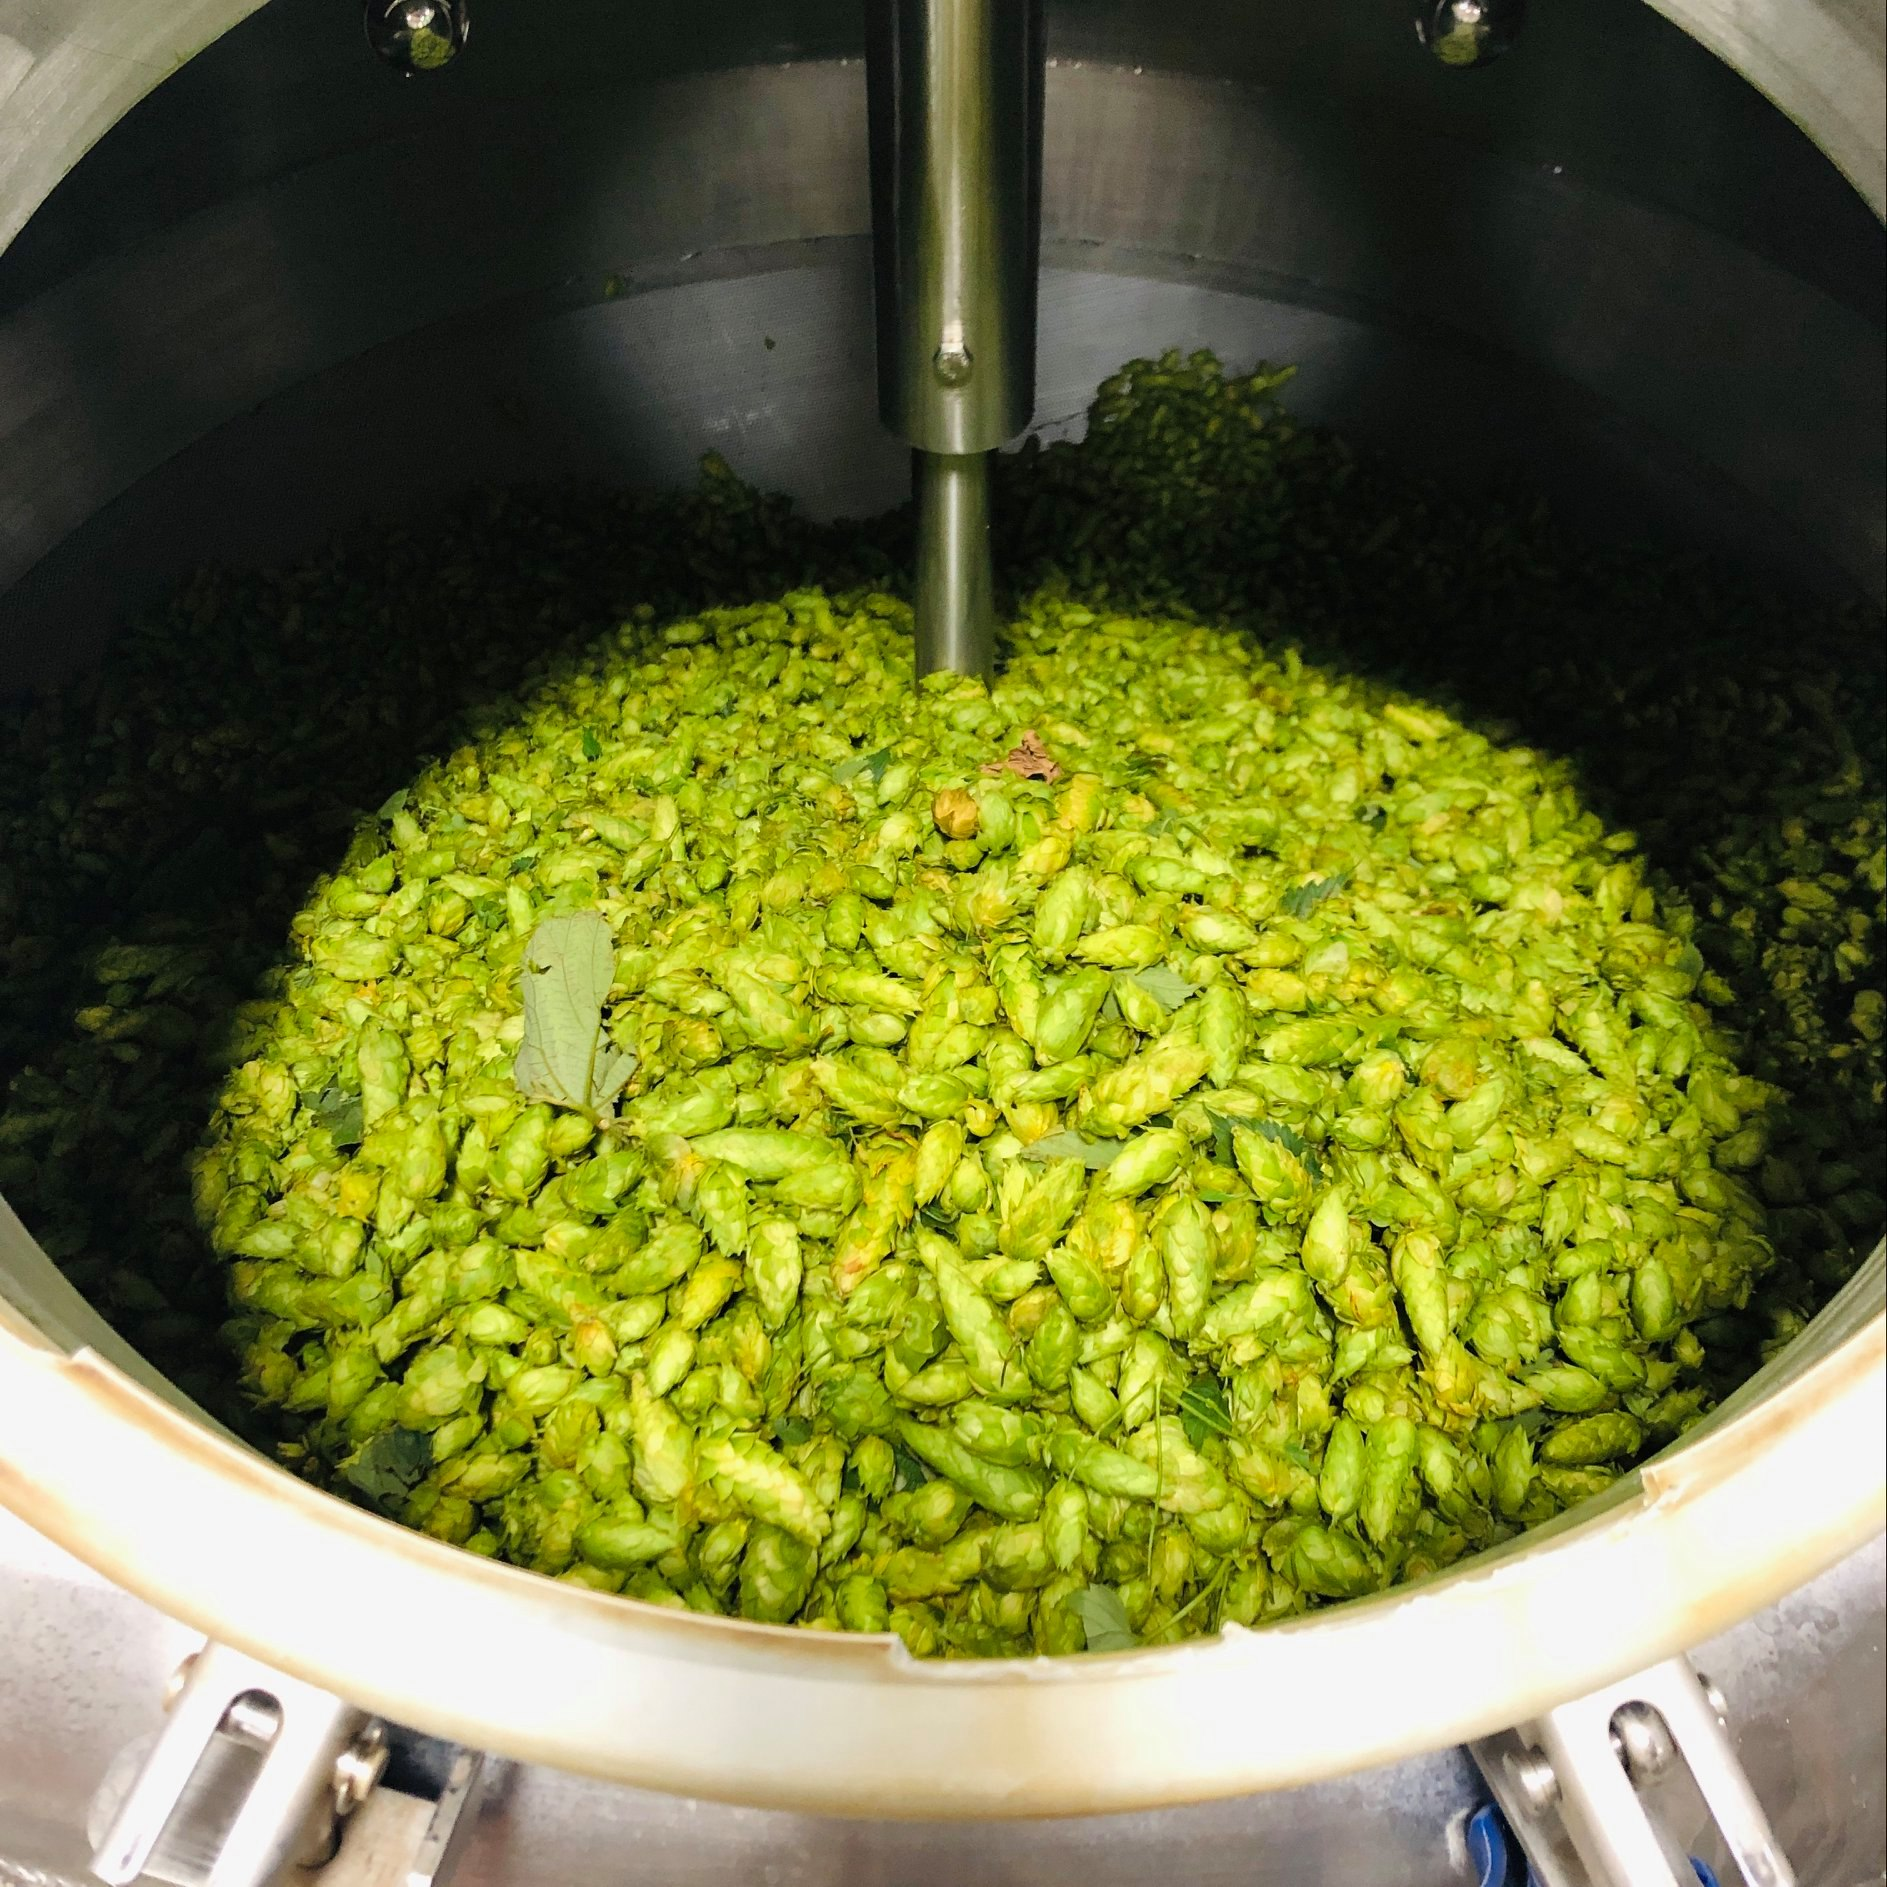 McKenzie Hops used by Crux Fermentation Project in its Pert Near Fresh Hop IPA. (image courtesy of Crux Fermentation Project)